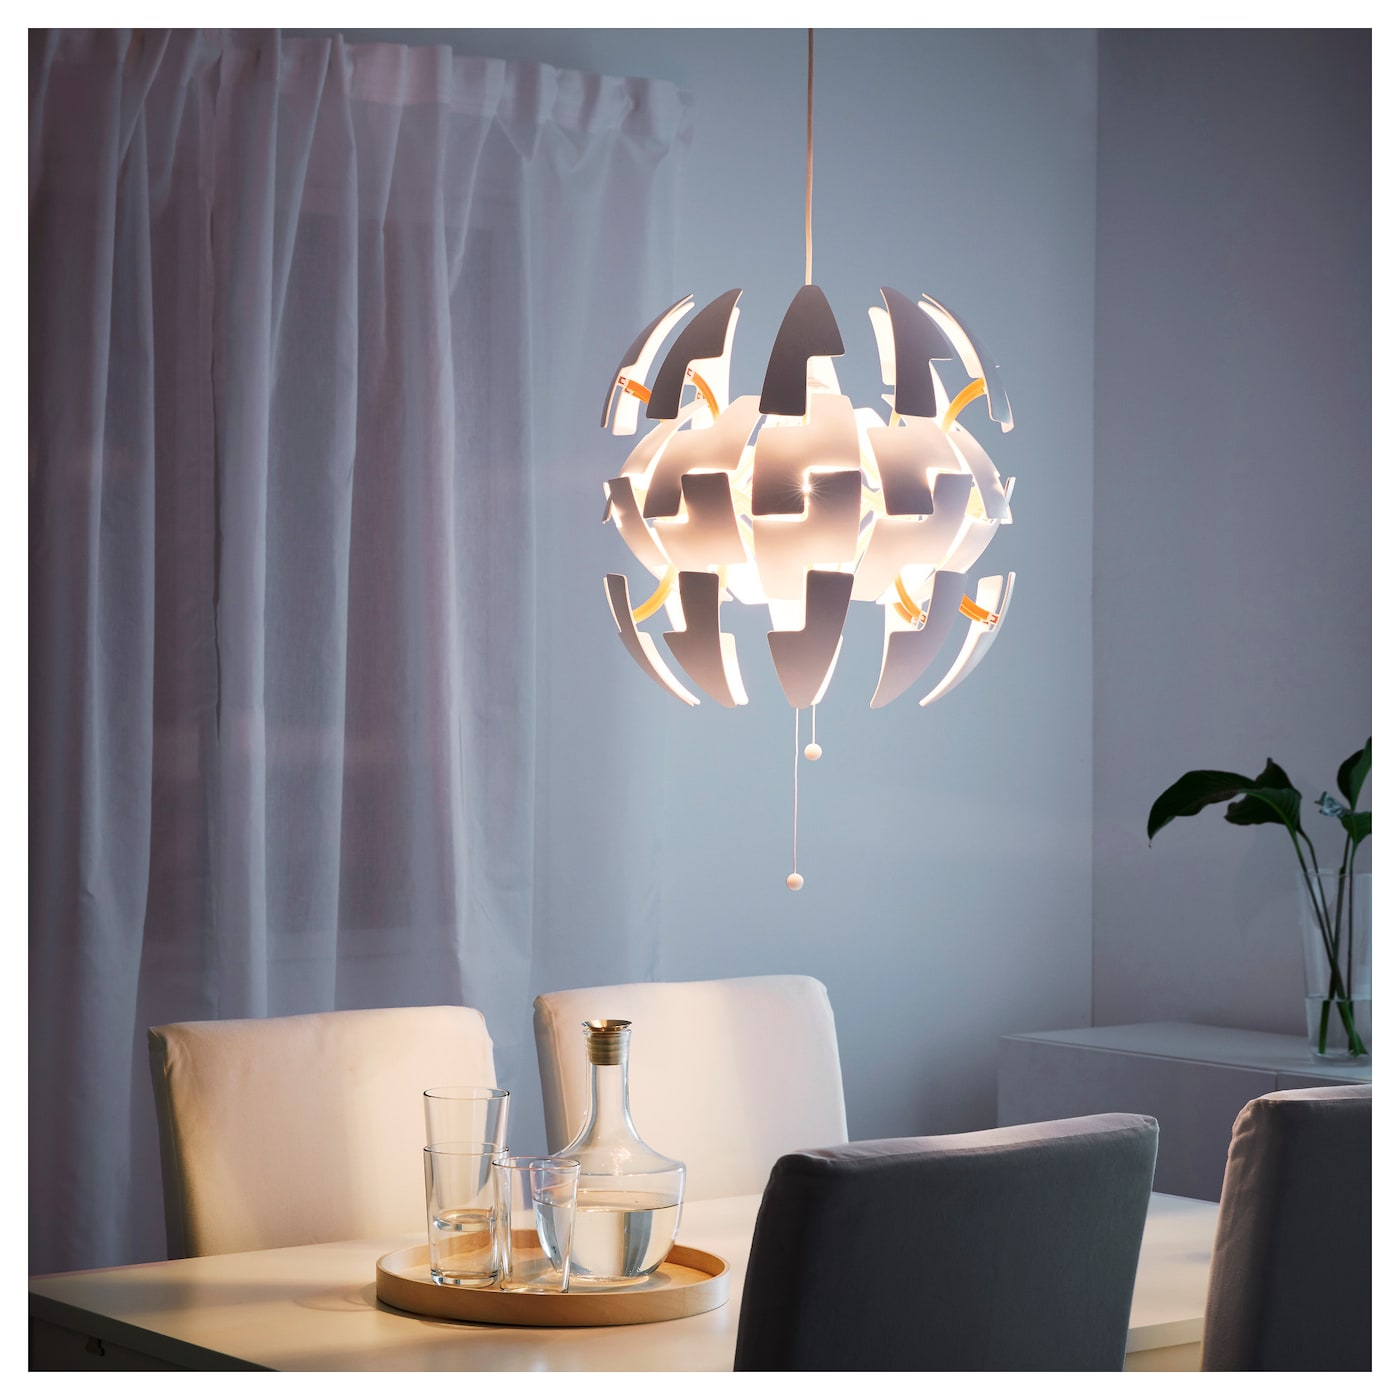 ikea ps 2014 pendant lamp white/orange - ikea